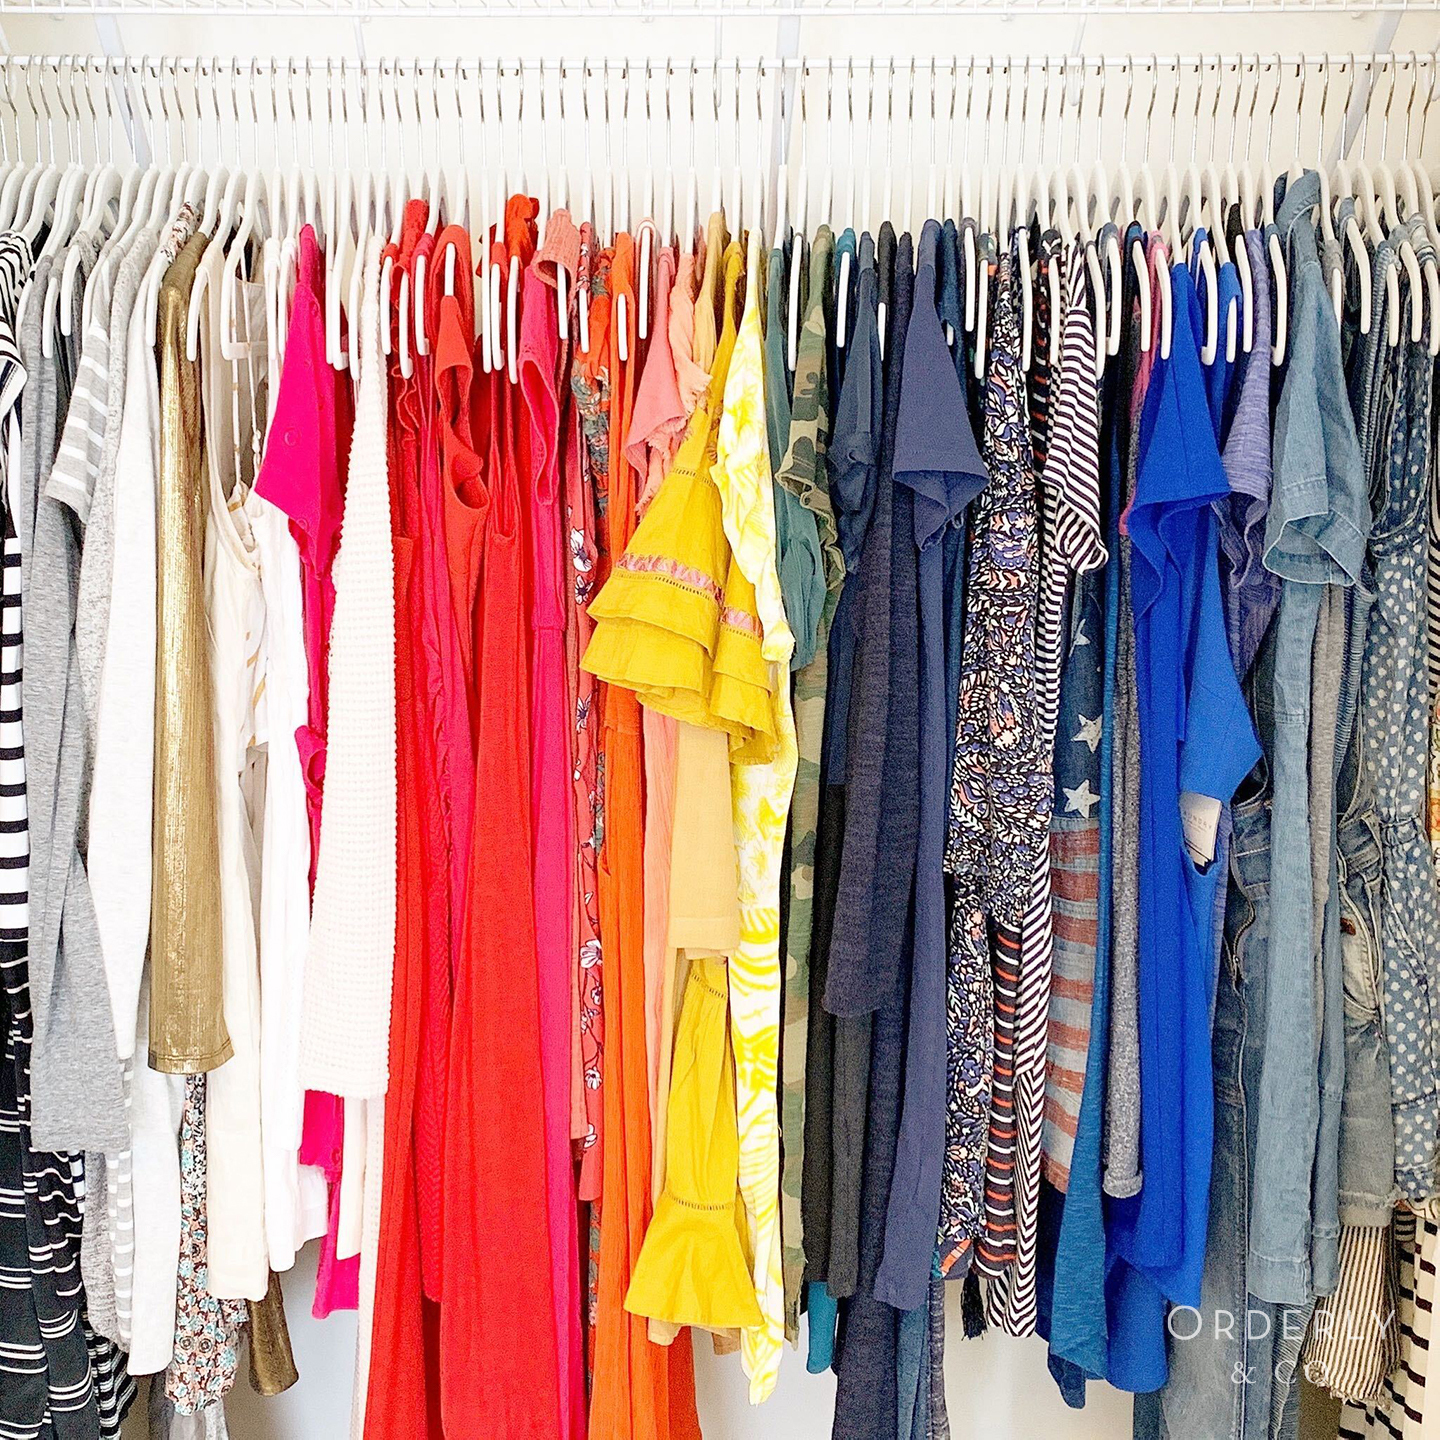 Clothes Professionally Organized in a Closet by Orderly & Co